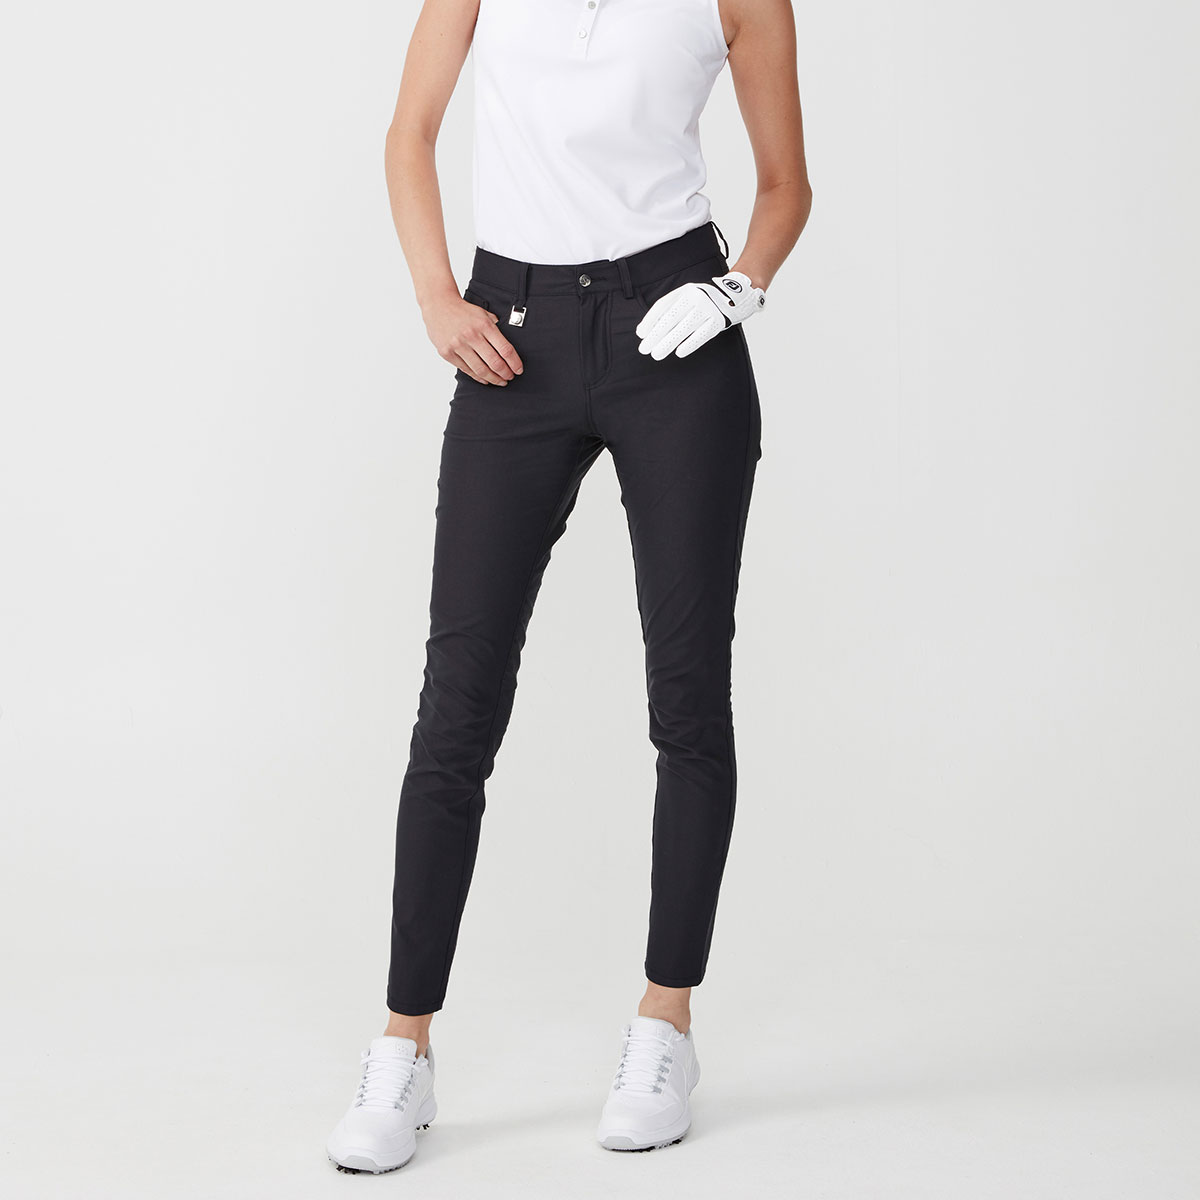 996162a32247 Röhnisch Ladies Firm Trousers | Online Golf